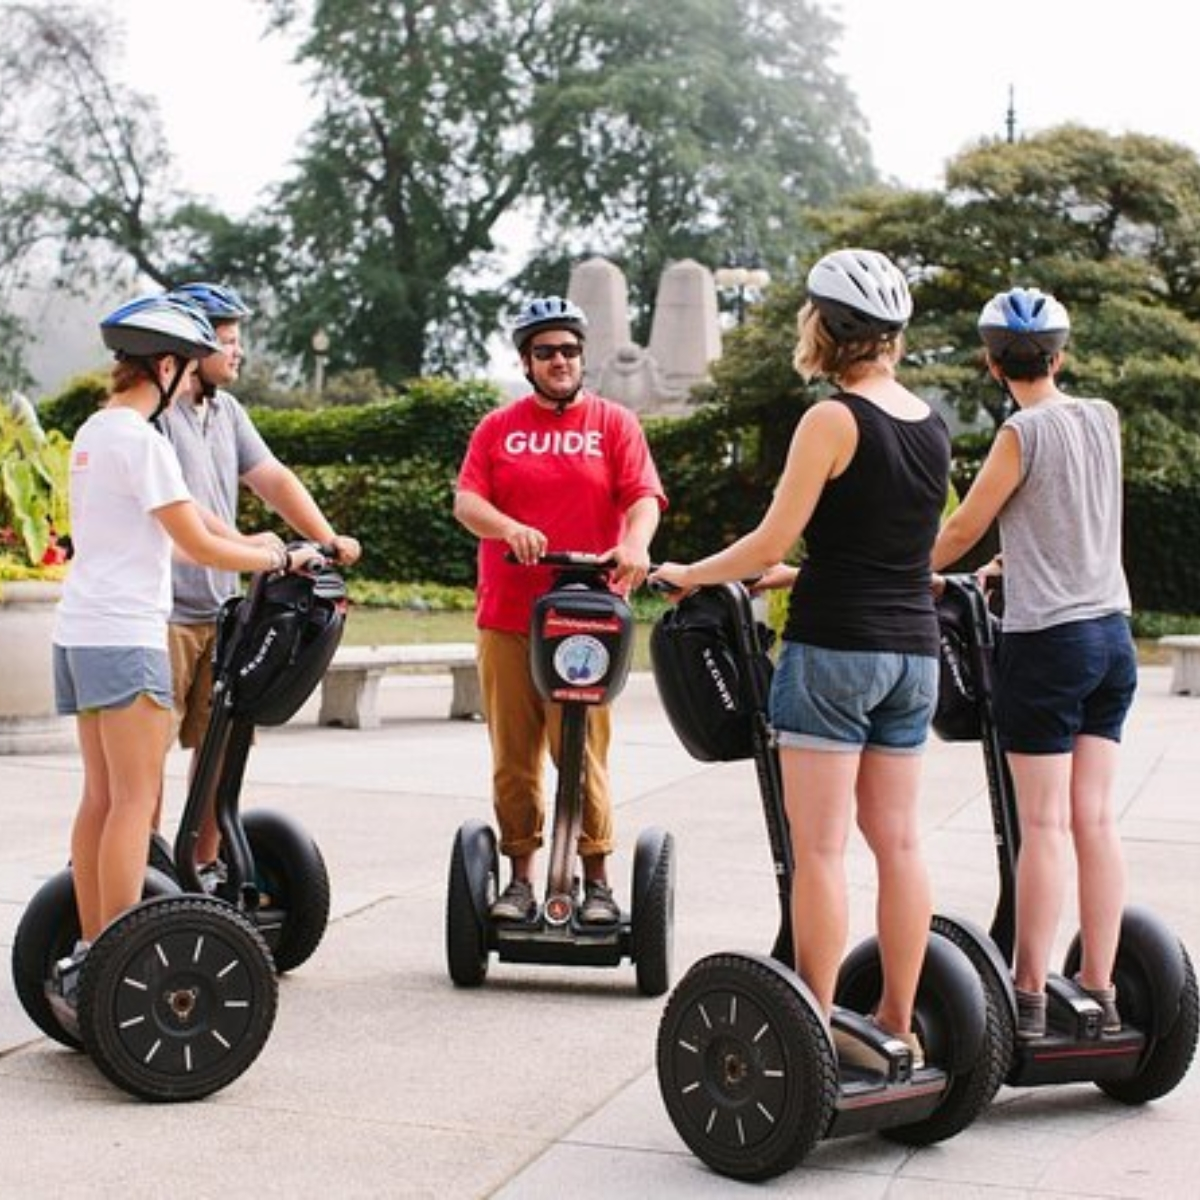 Chicago Segway Tour Images